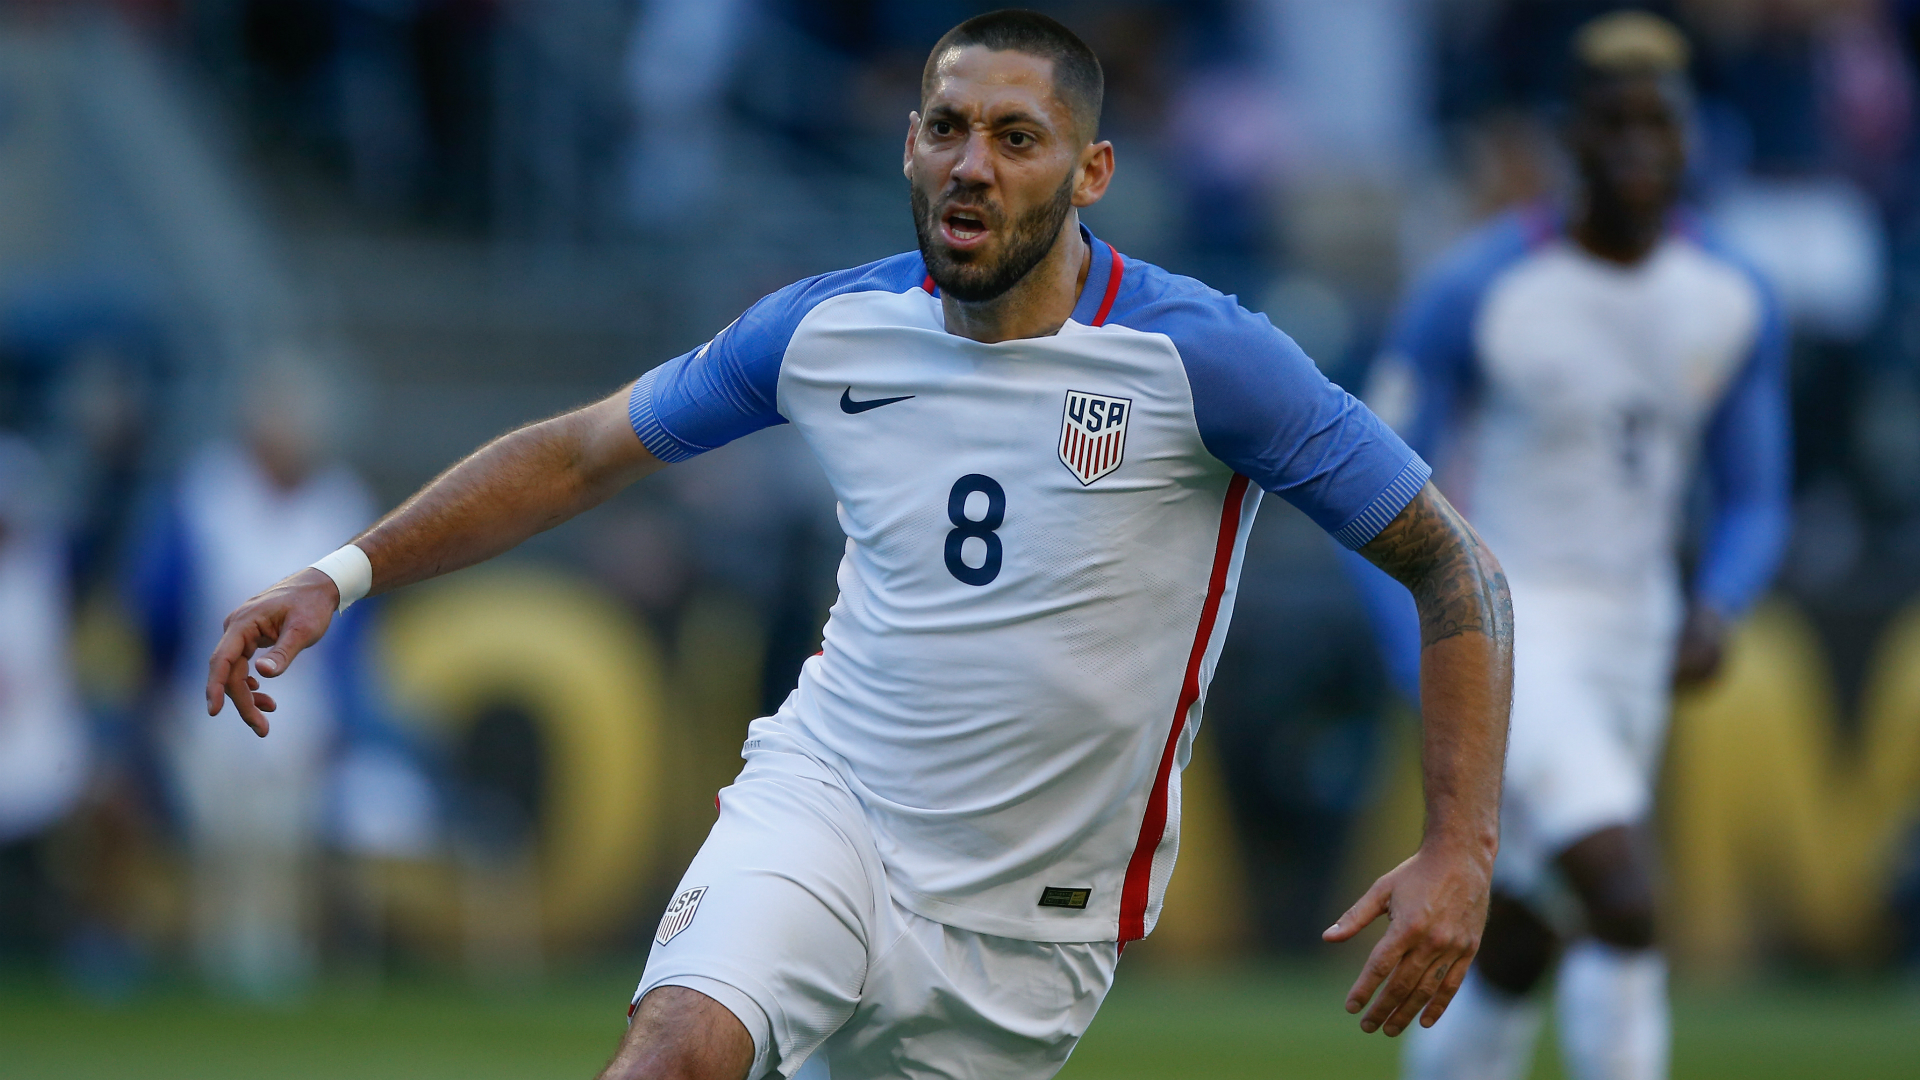 USMNT Reveals World Cup Qualifying Roster Including Return of Clint Dempsey